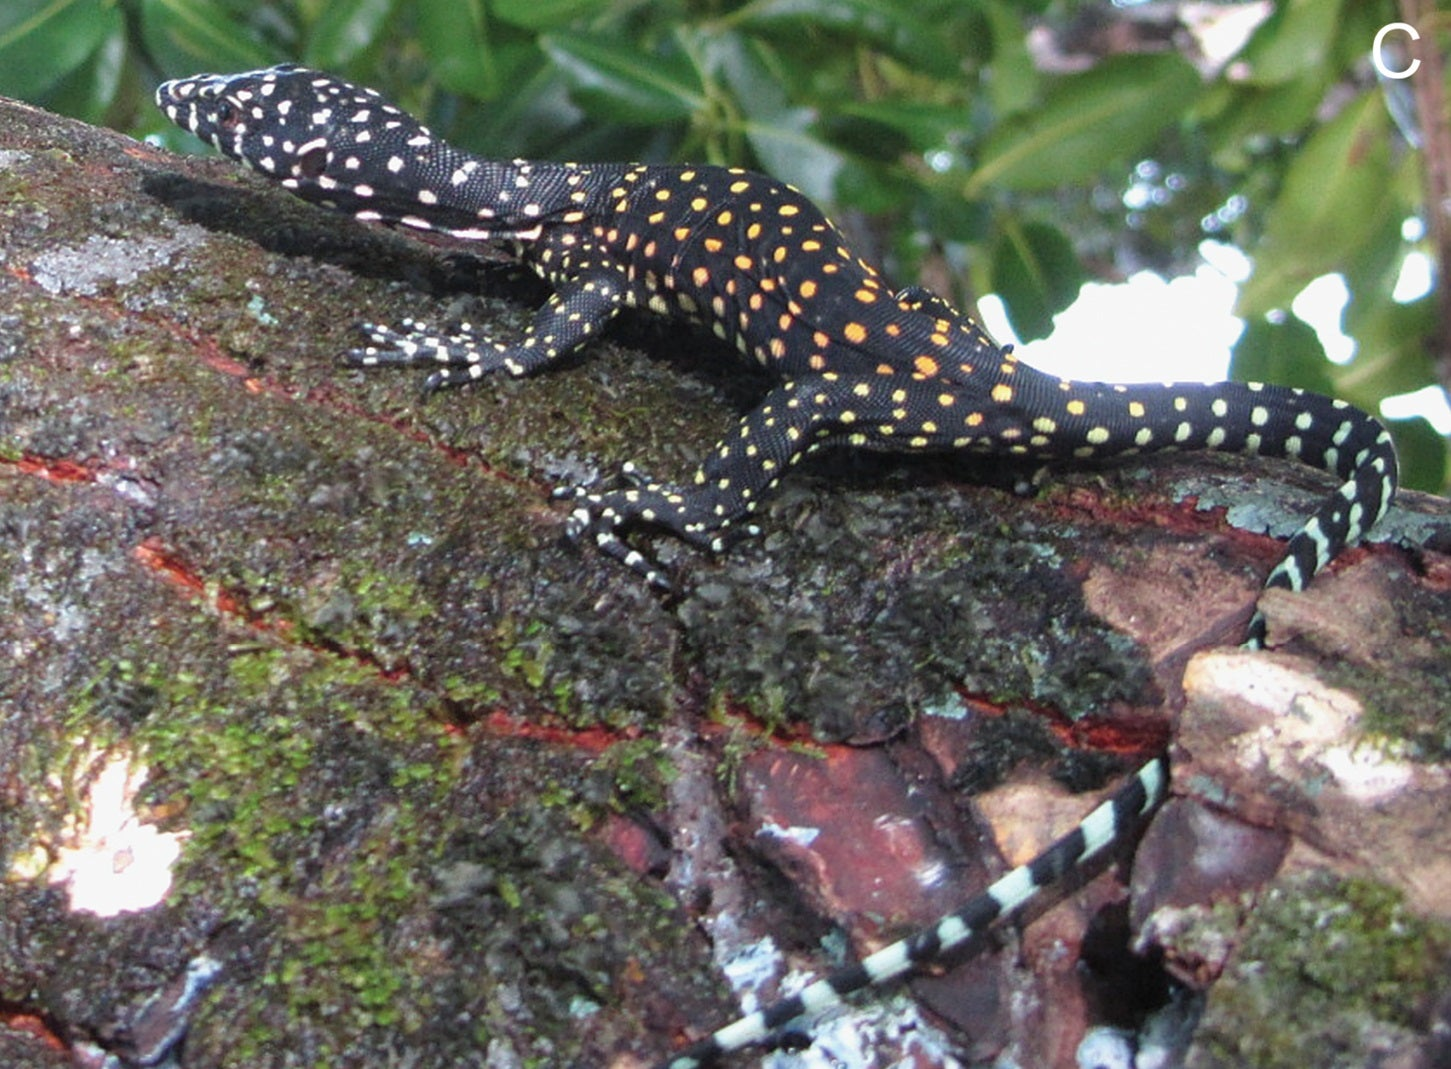 Meet the Million-Year-Old Lizard Species We Didn't Know Existed Until Now